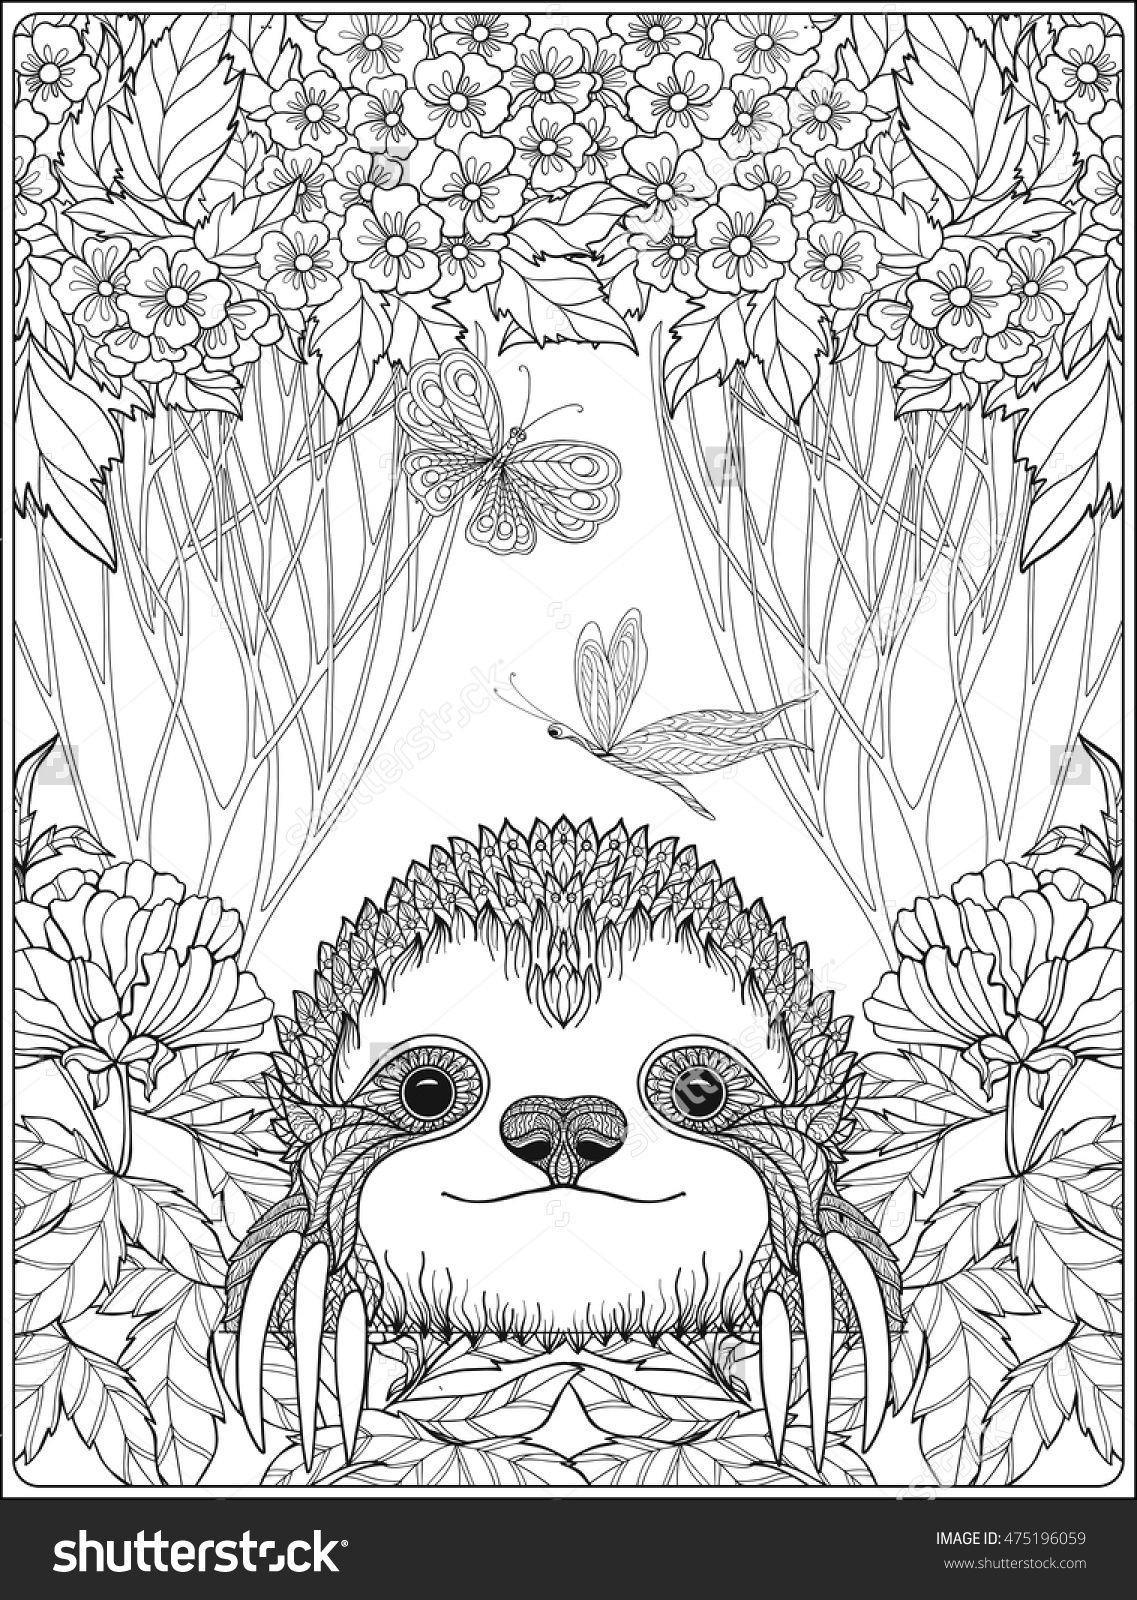 Printable Sloth Coloring Pages  Gallery 8p - To print for your project